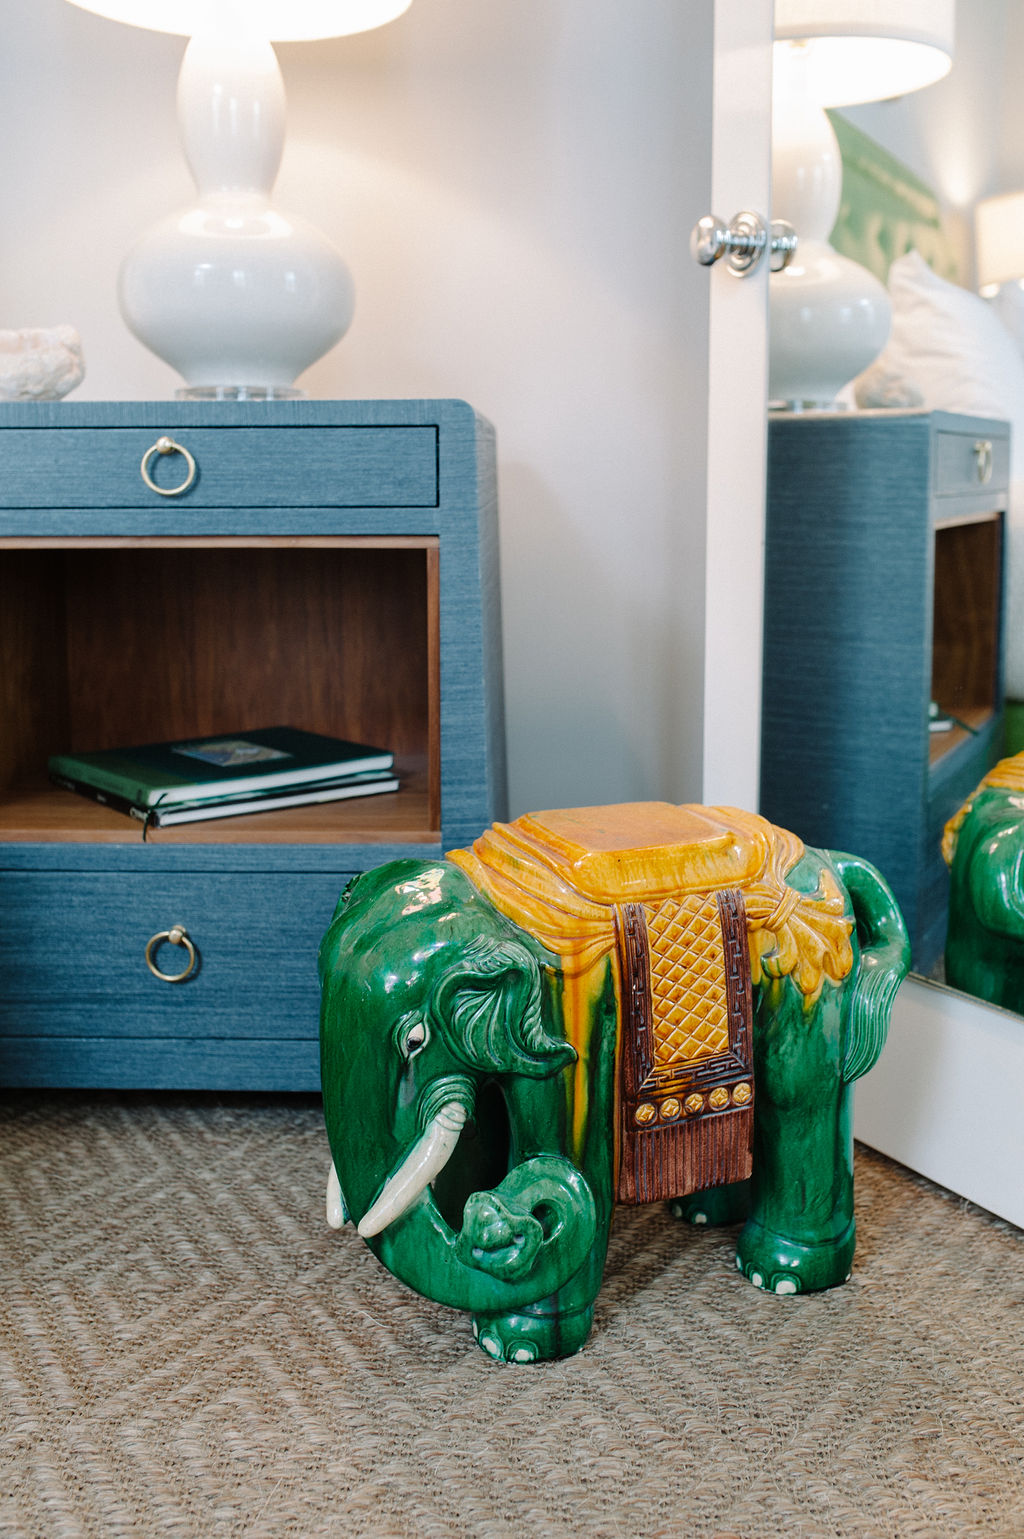 Detail of green elephant sculpture next to nightstand in Room 11